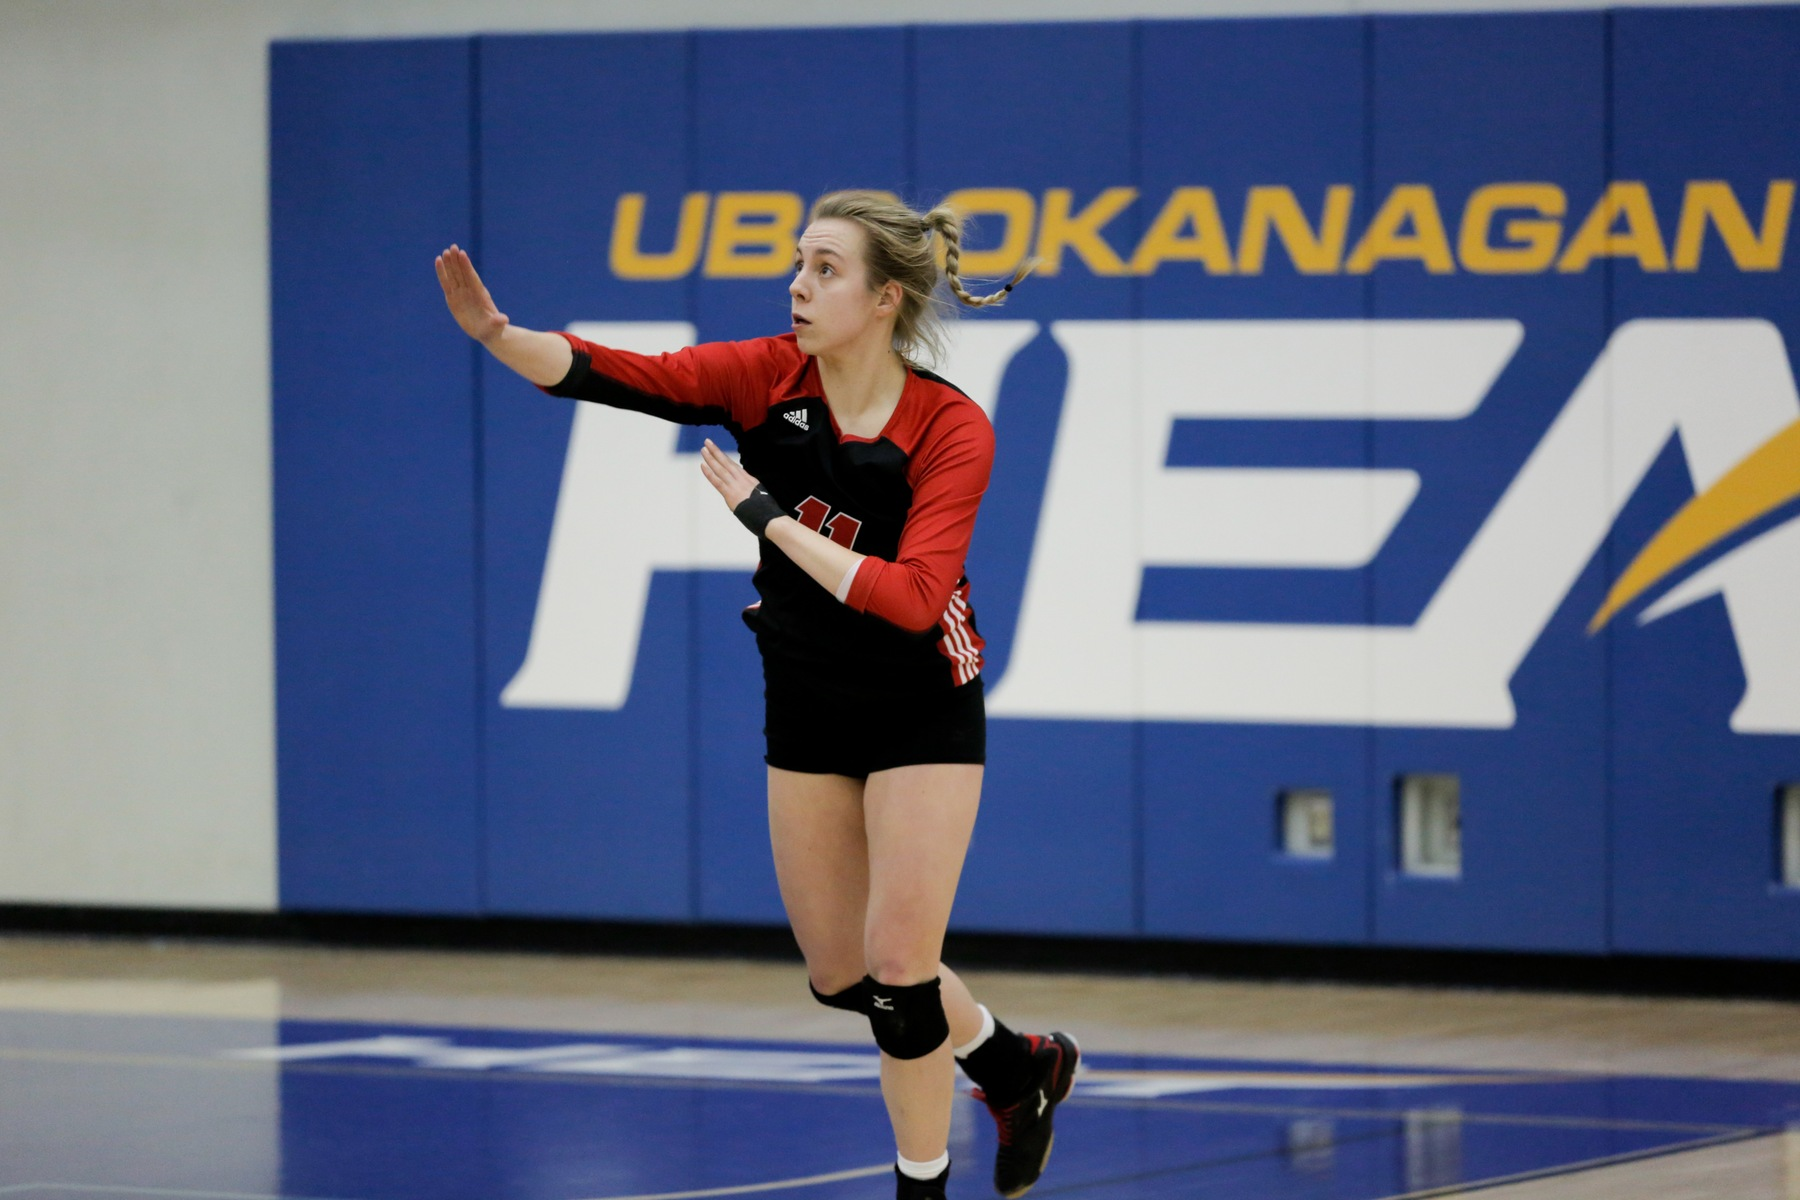 Jessica Friesen had seven kills on 10 swings with no errors in the Wesmen loss in Kelowna on Friday. (Cary Mellon/UBCO)